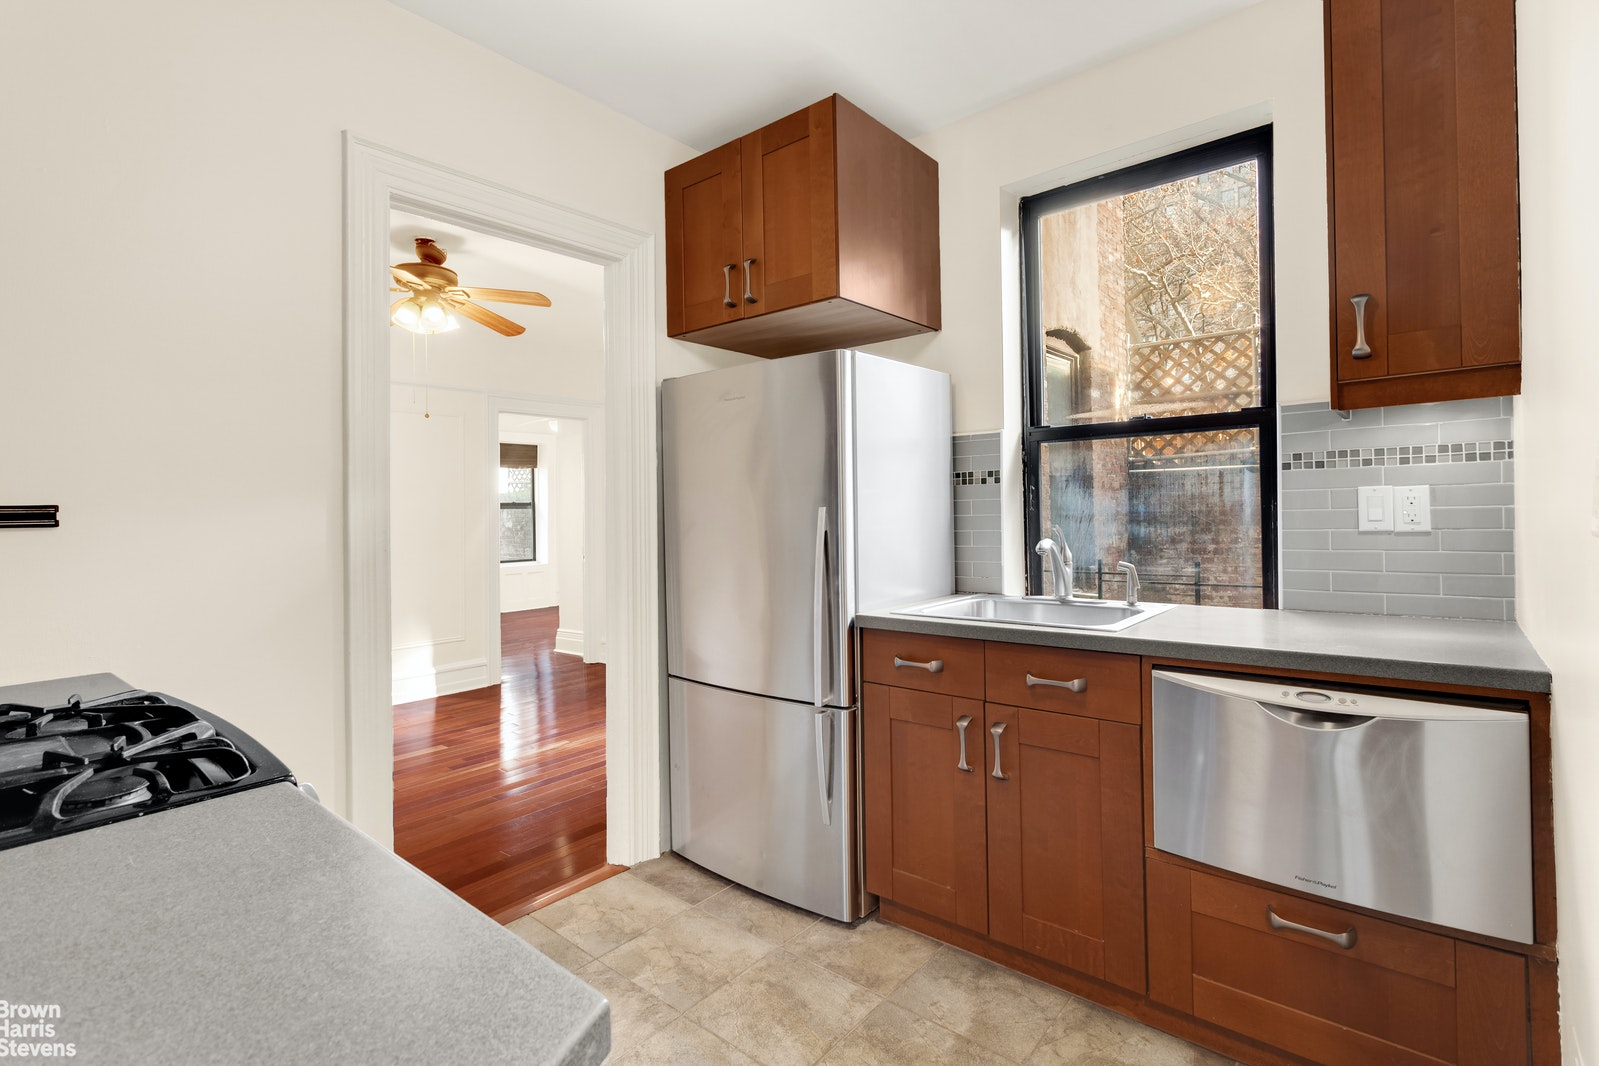 Apartment for sale at 411 West 44th Street, Apt 13